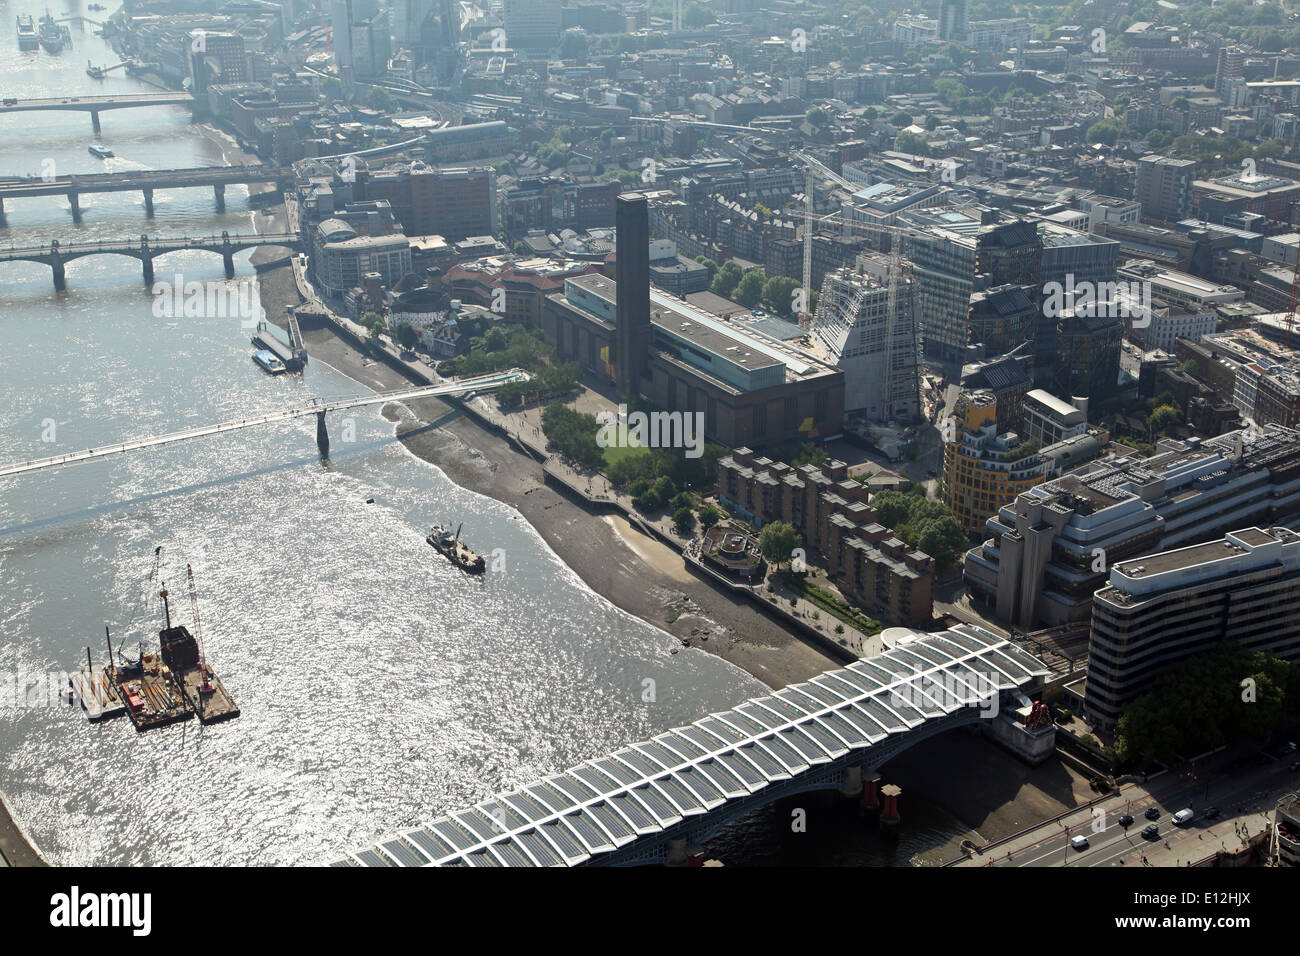 aerial view of Tate Modern and the River Thames, London, UK - Stock Image